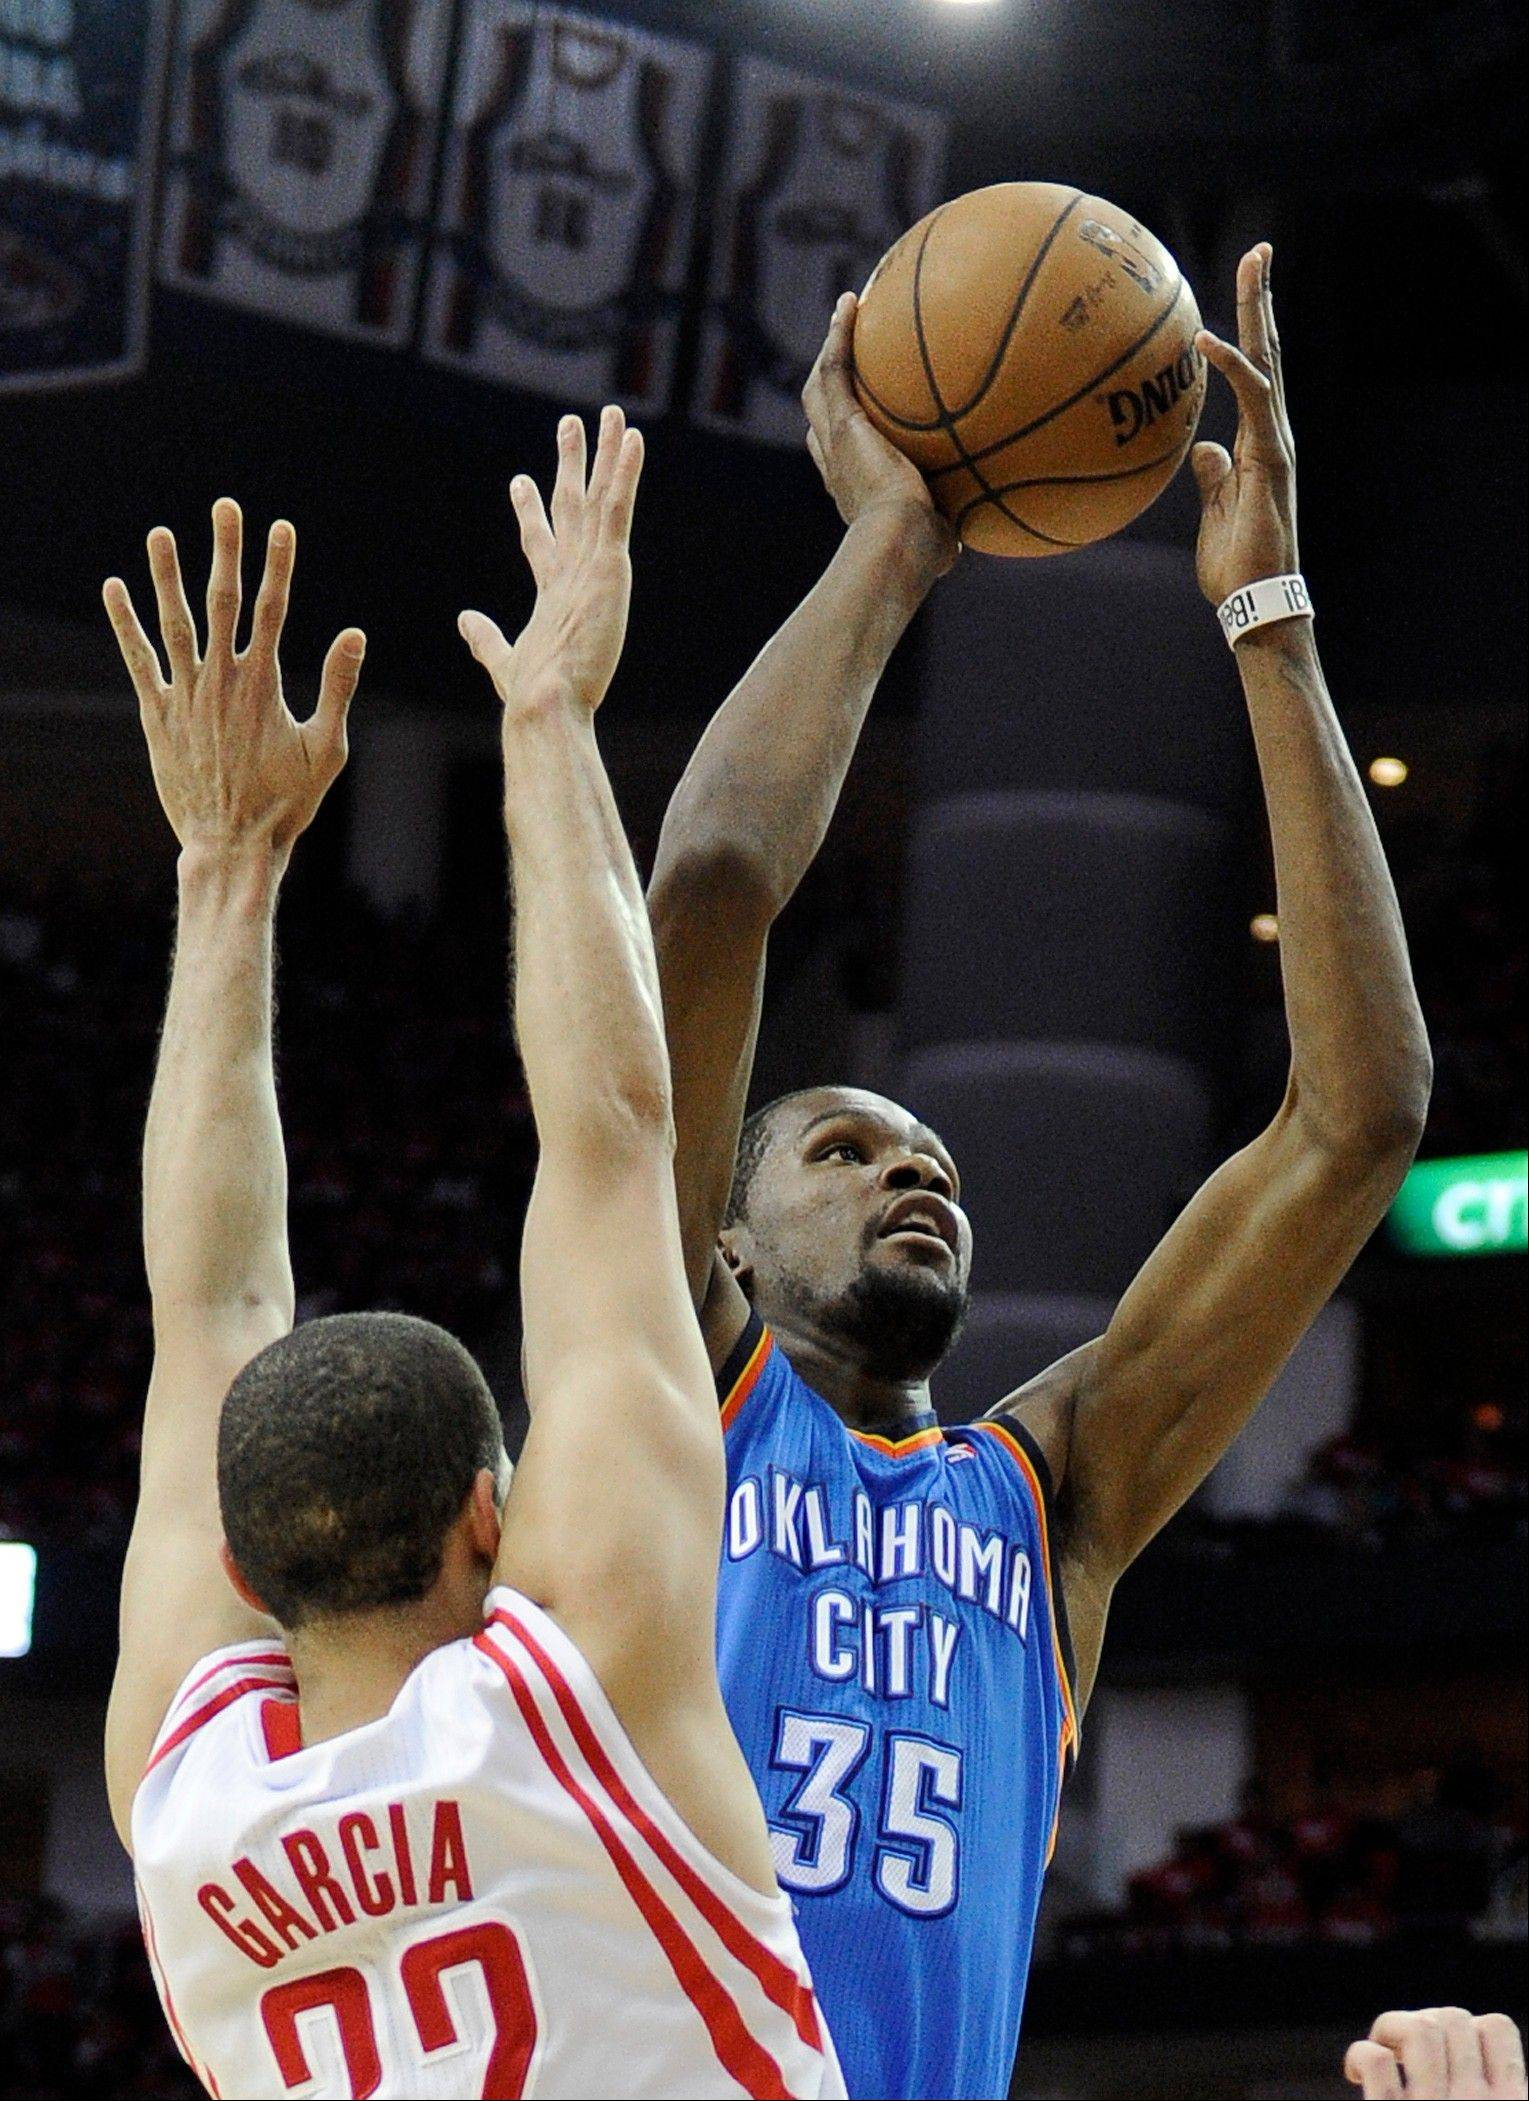 Oklahoma City Thunder's Kevin Durant (35) shoots in front of Houston Rockets' Francisco Garcia (32) in the first quarter of Game 6 in a first-round NBA basketball playoff series Friday, May 3, 2013, in Houston.